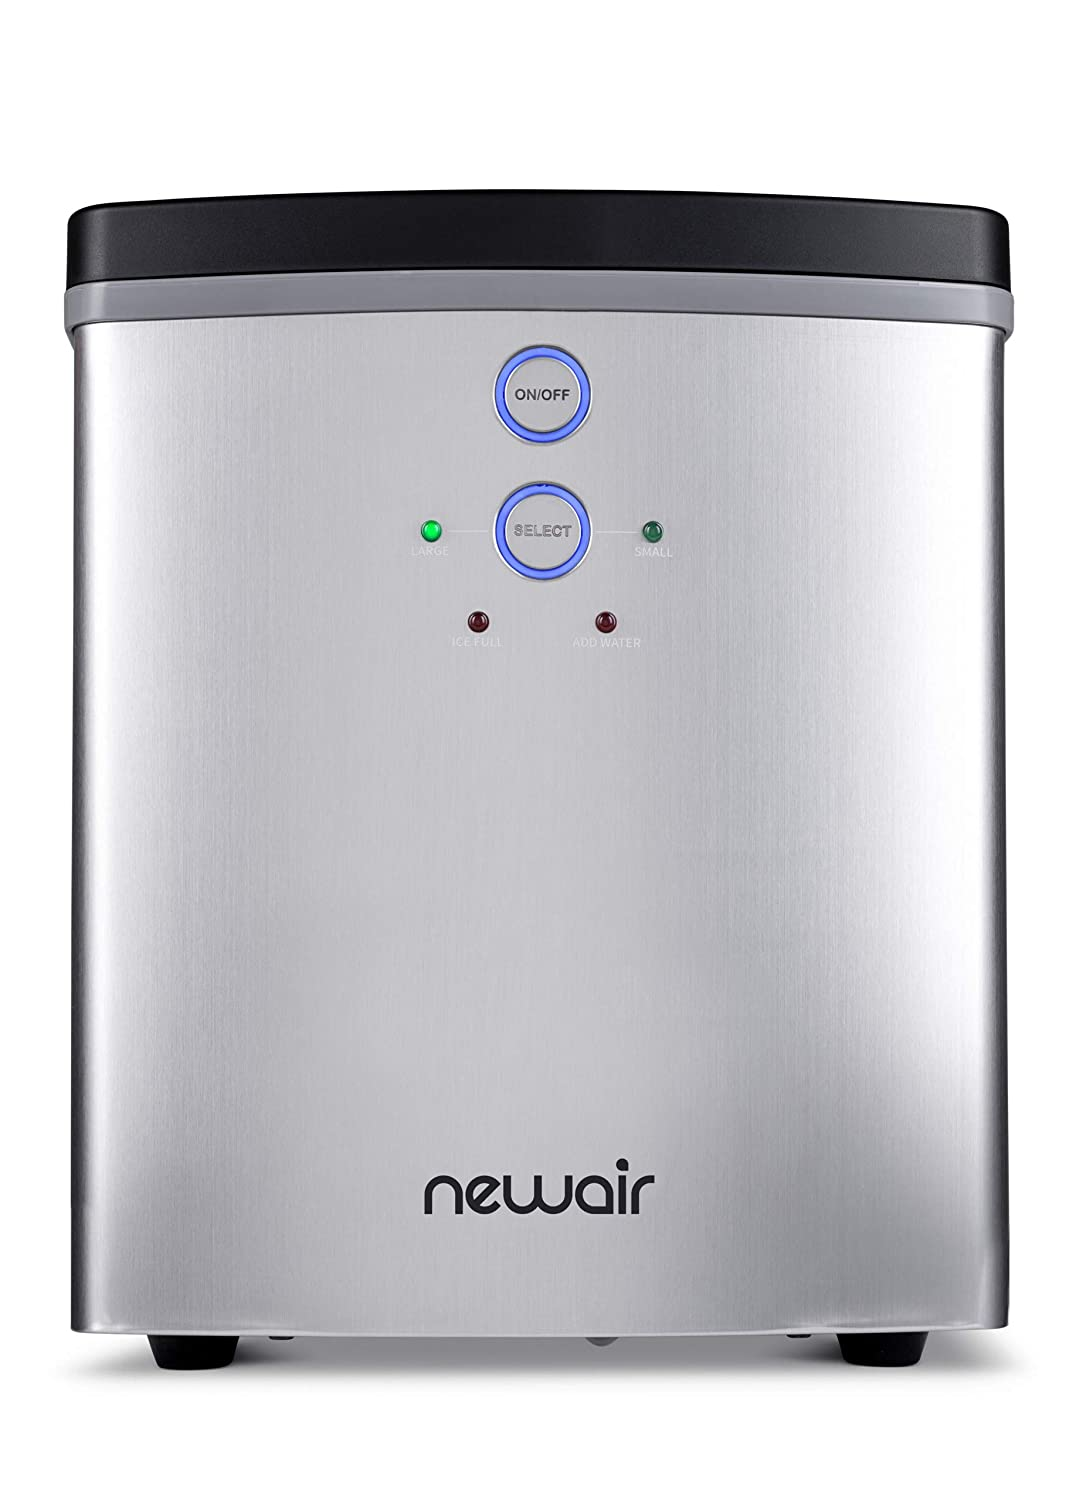 NewAir Portable Maker 33 lb 2 Ice Size Bullets Daily, Perfect Machine for Countertops, NIM033SS00, Stainless Steel, Stainless Steel